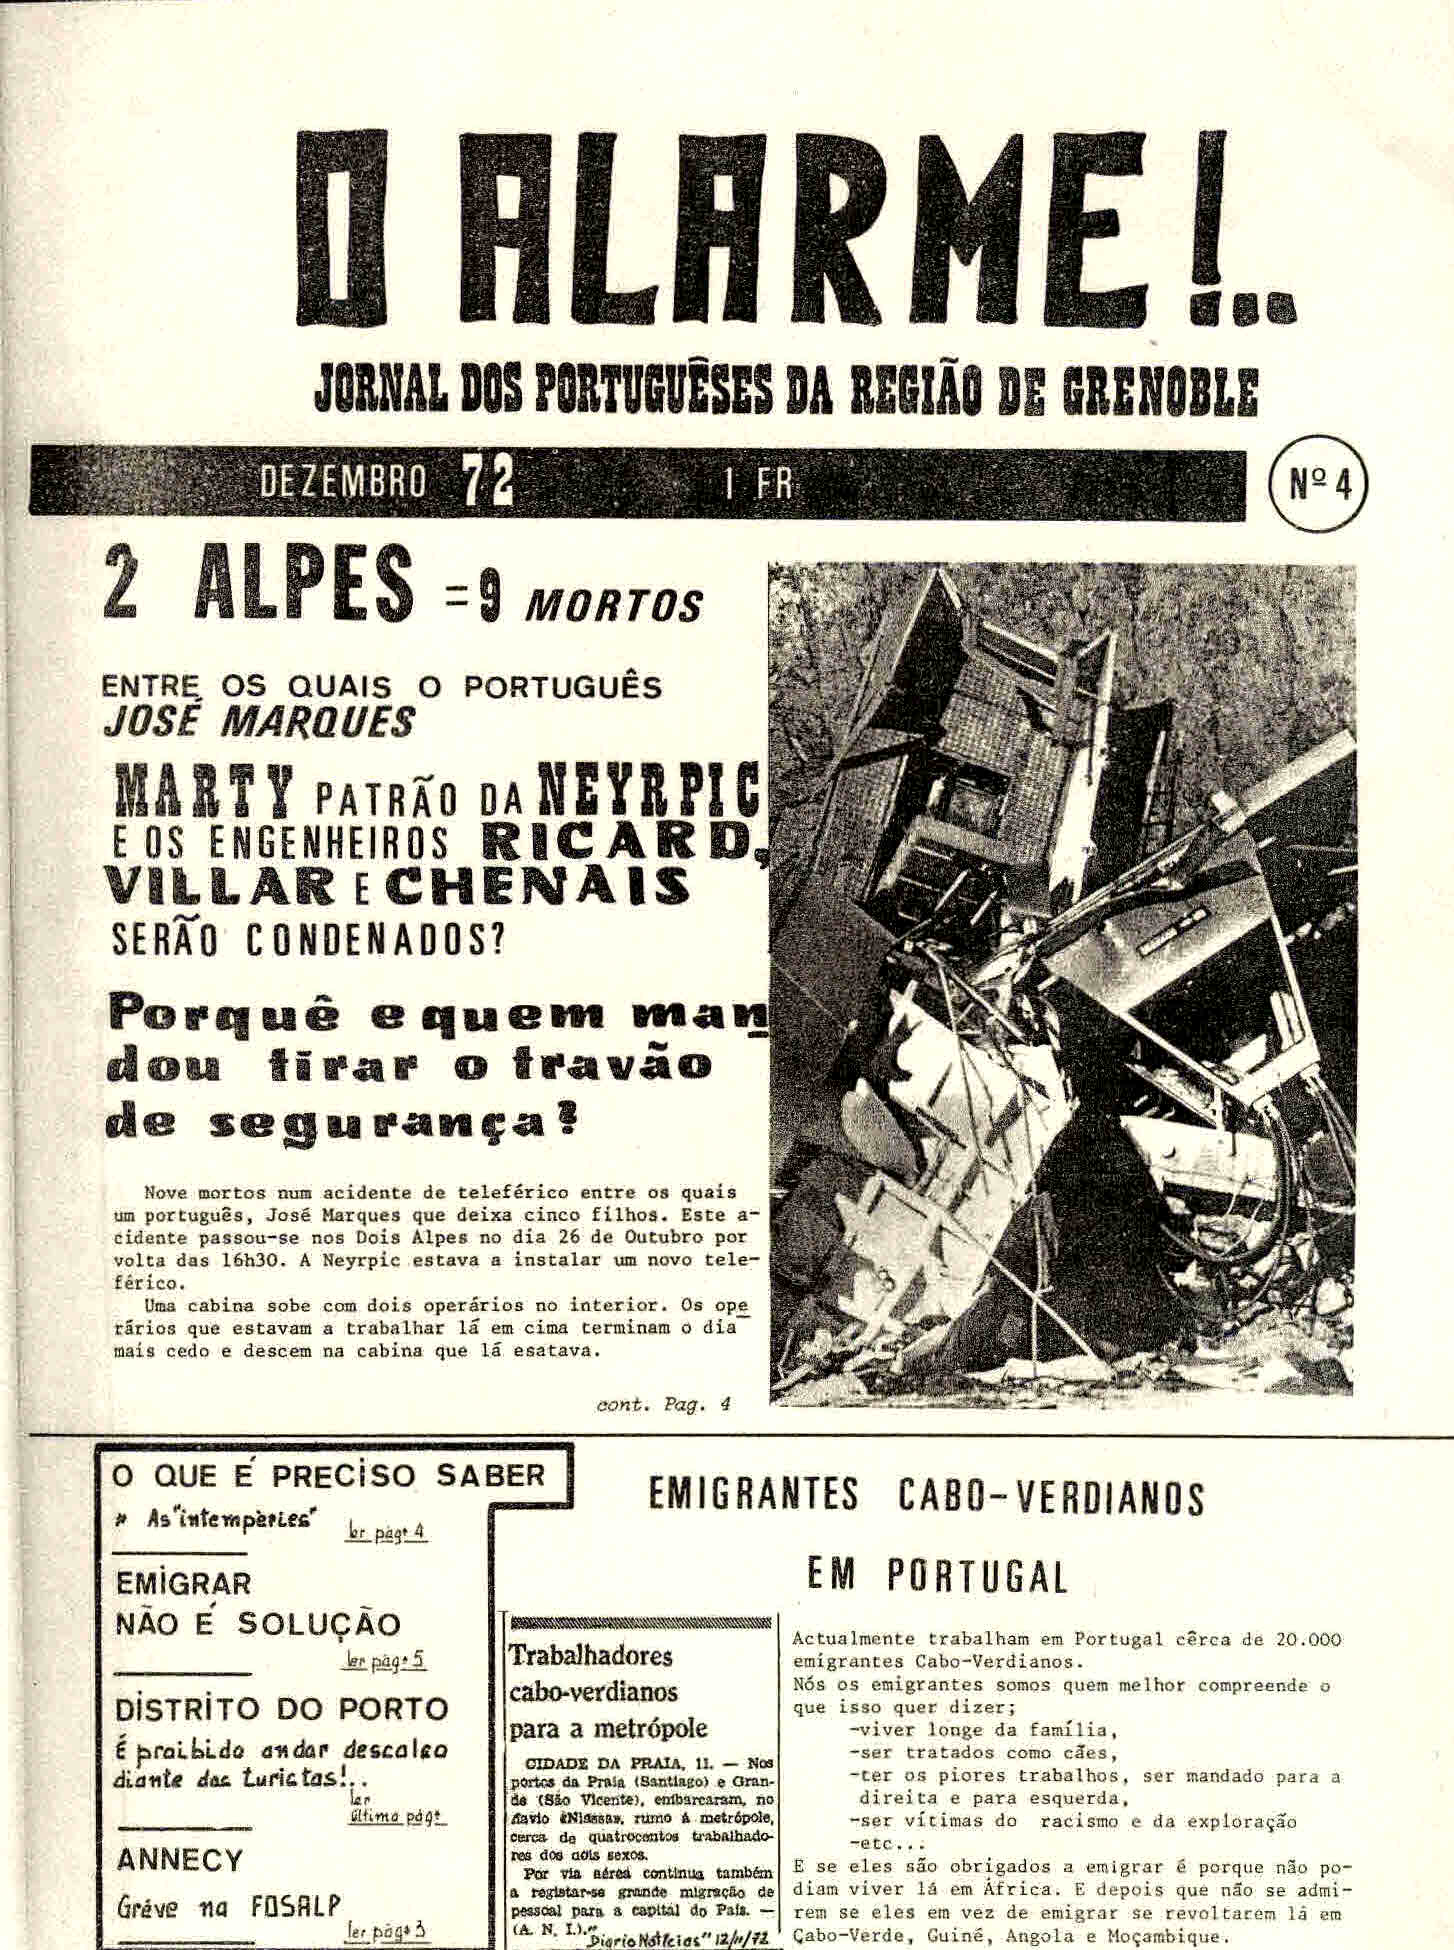 Copy of alarme 4